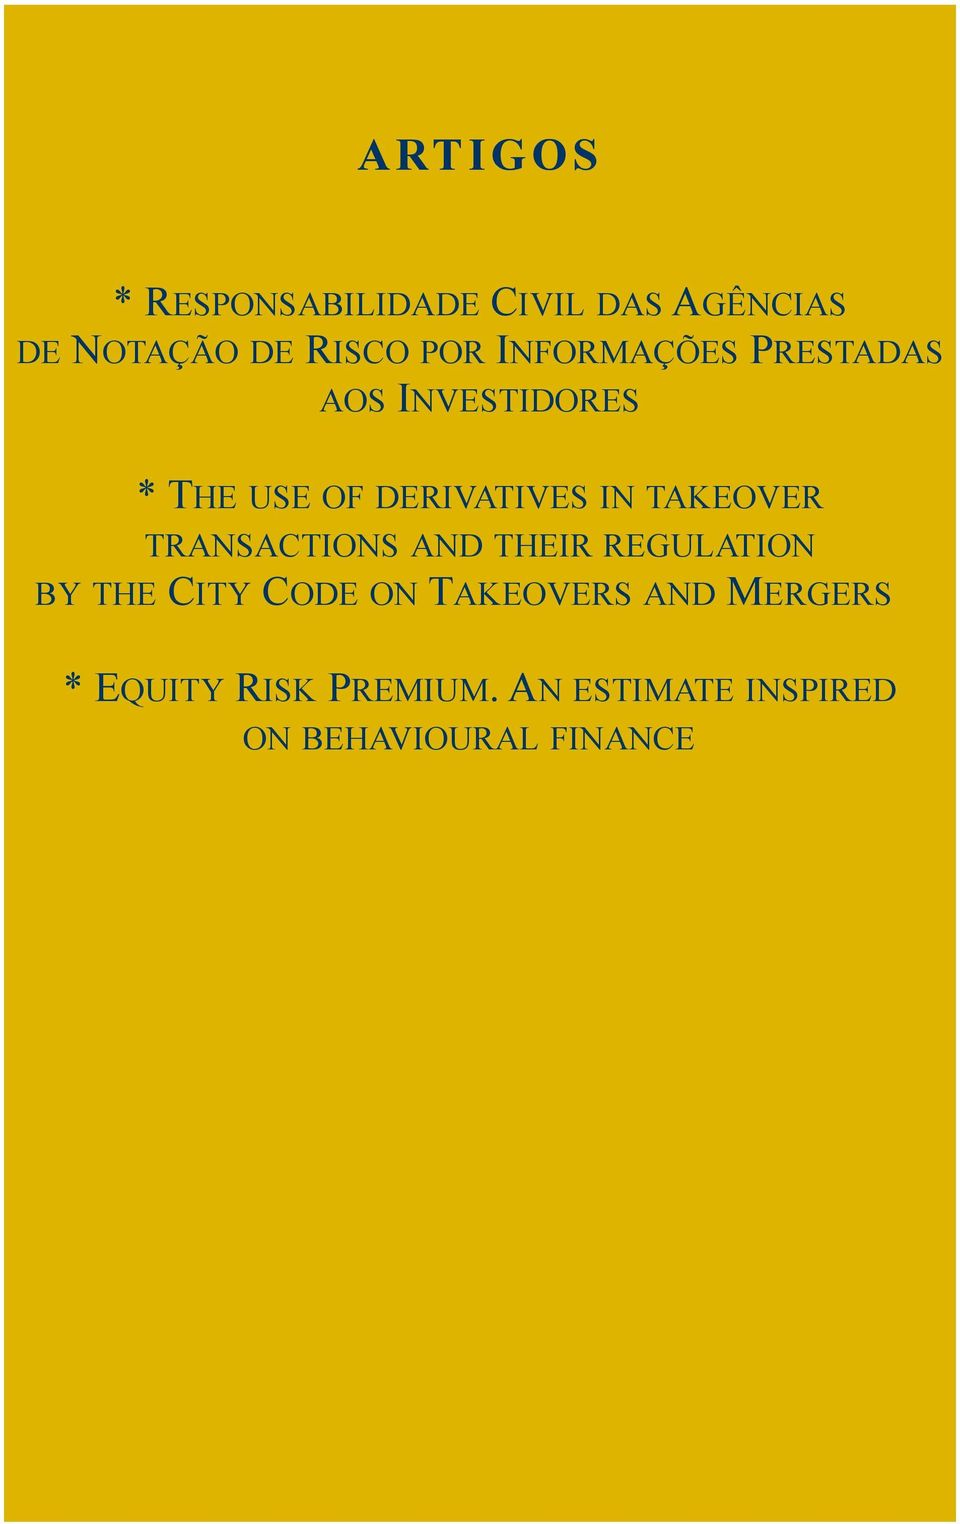 OF DERIVATIVES IN TAKEOVER TRANSACTIONS AND THEIR REGULATION BY THE CITY CODE ON